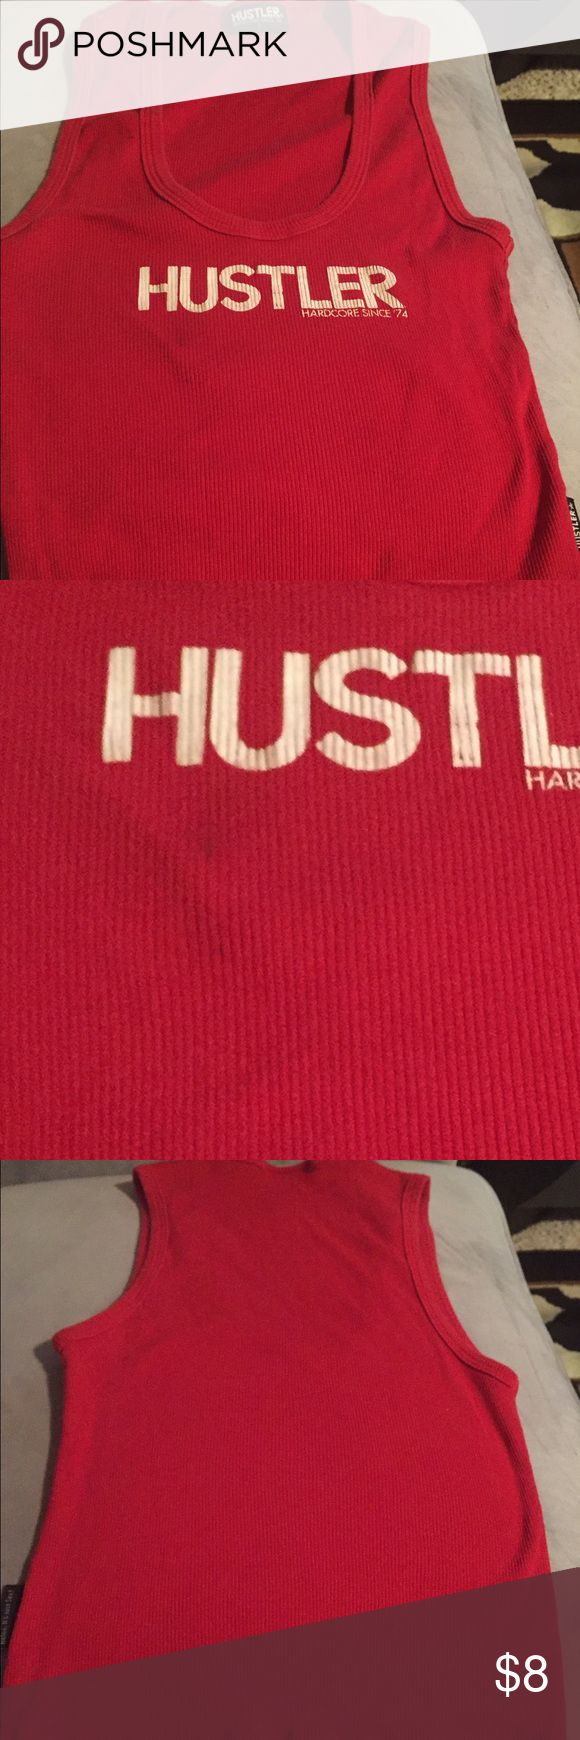 Hustler tank top Hustler tank top. Does have a small stain on shirt (2nd pic). hustler Tops Tank Tops